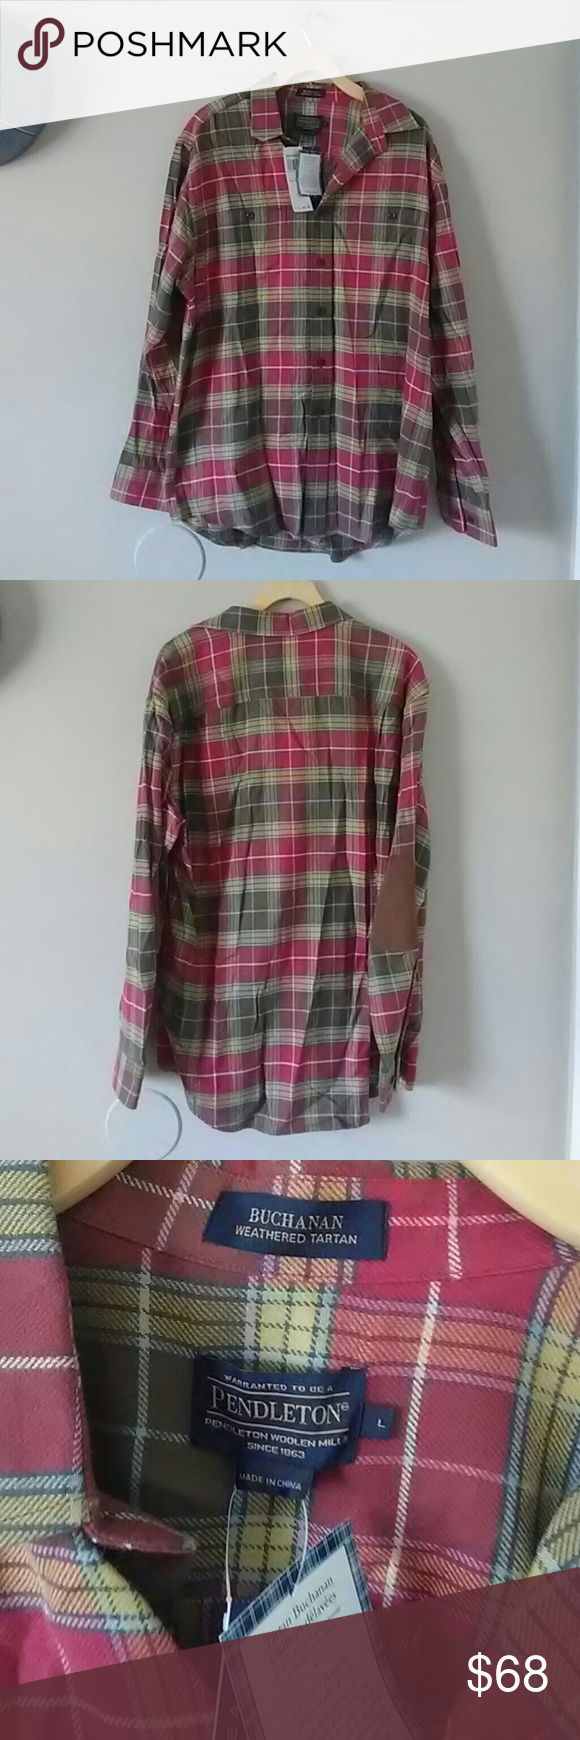 Pendleton Buchanan weathered tartan shirt. Pendleton Buchanan weathered tartan shirt. Body 100 % cotton. Trim 100% polyester. Beautiful red and olive green plaid shirt with brown patch elbows. NWT. Offers Welcome. Pendleton Shirts Casual Button Down Shirts